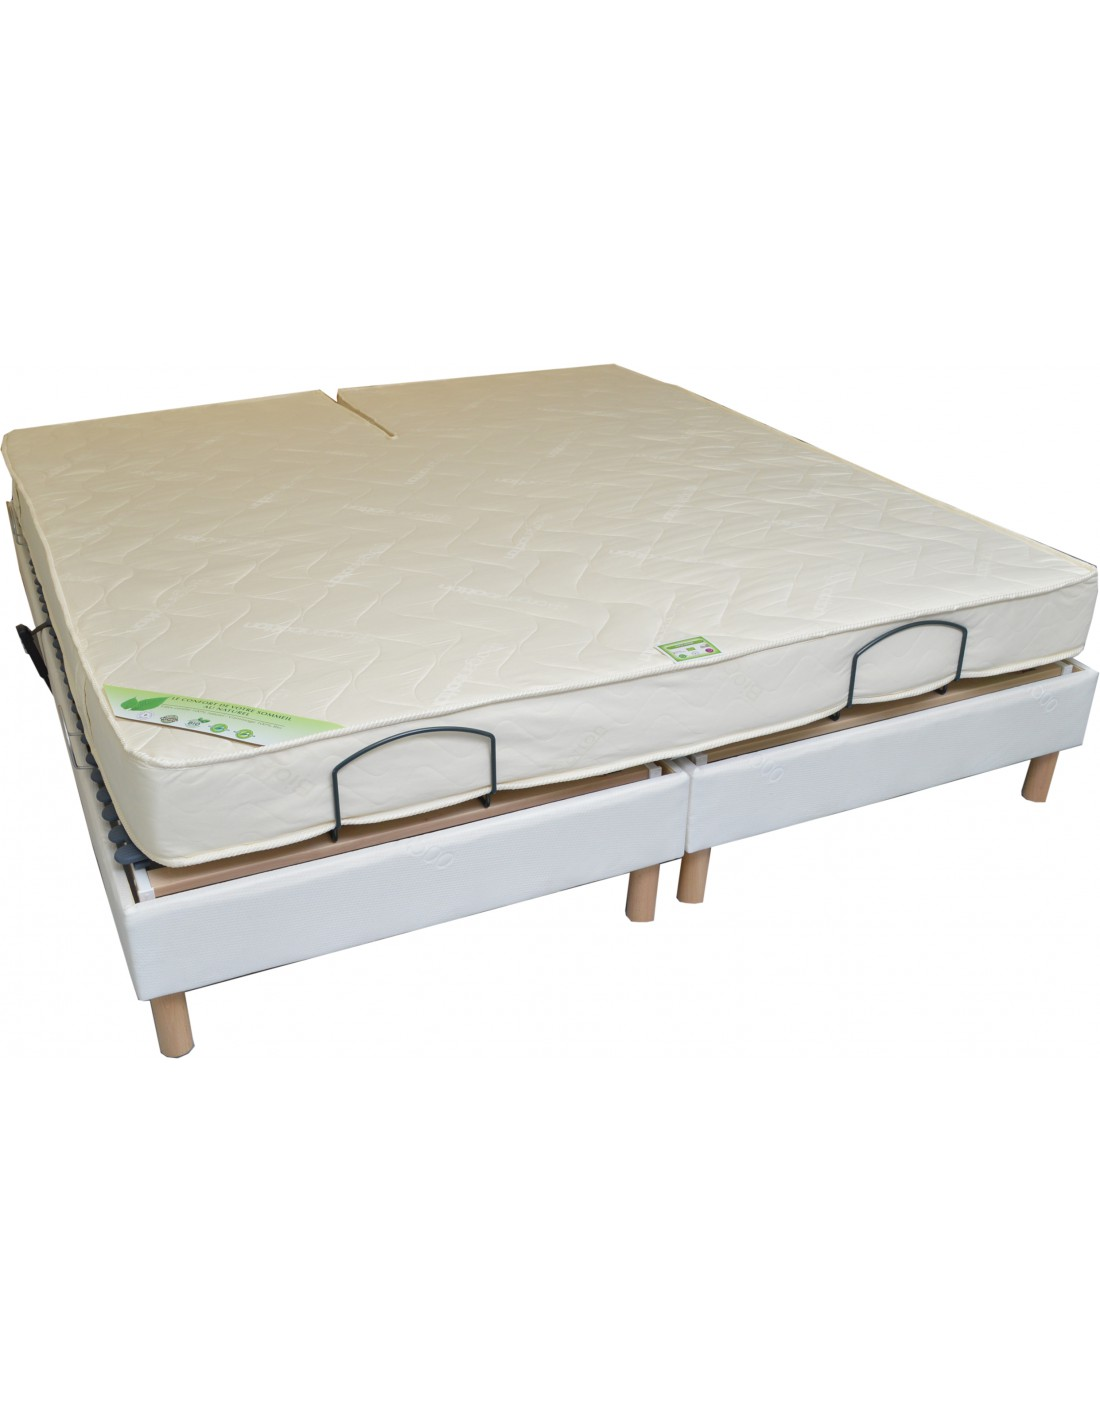 matelas bio latex de relaxation 160x200 bi t te naturel l gance ferme 18 cm. Black Bedroom Furniture Sets. Home Design Ideas